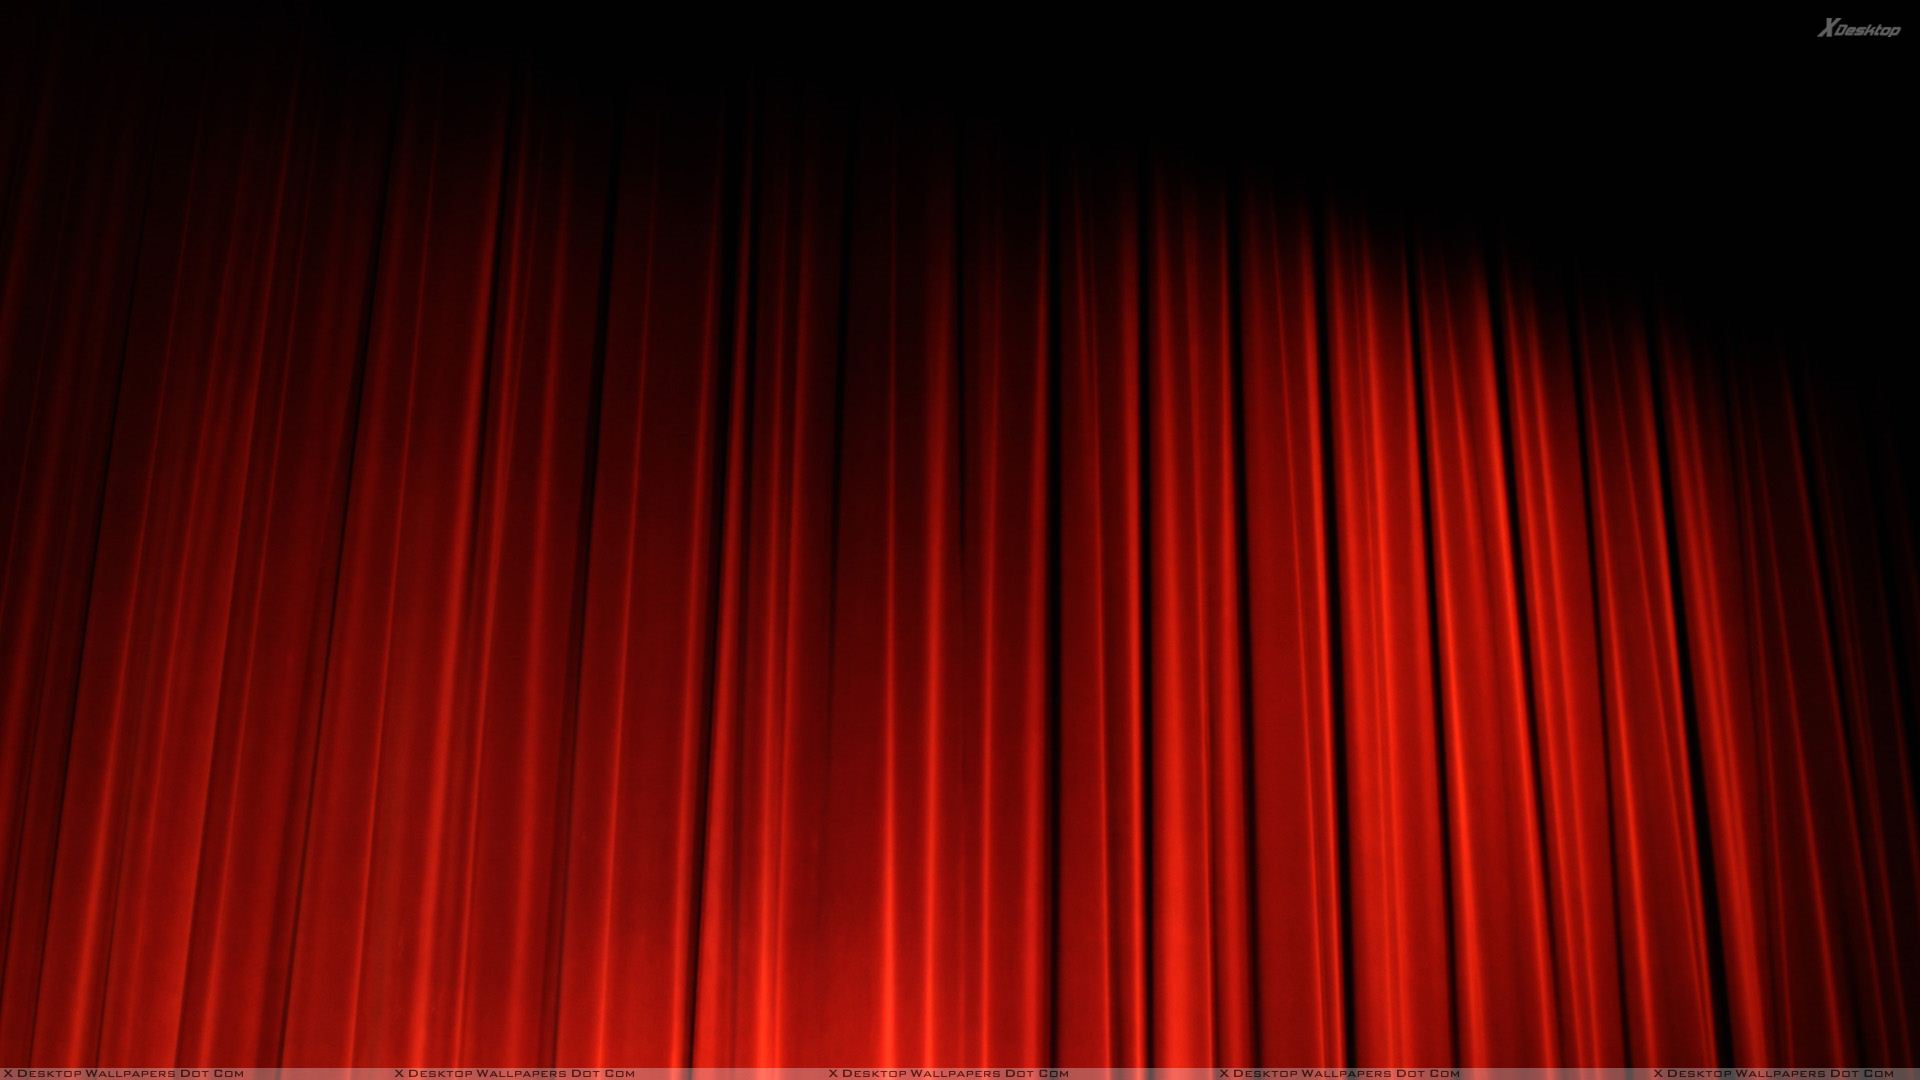 Free Download Red Curtain In Cinema Wallpaper 1920x1080 For Your Desktop Mobile Tablet Explore 46 Movie Wallpapers Movies Hd